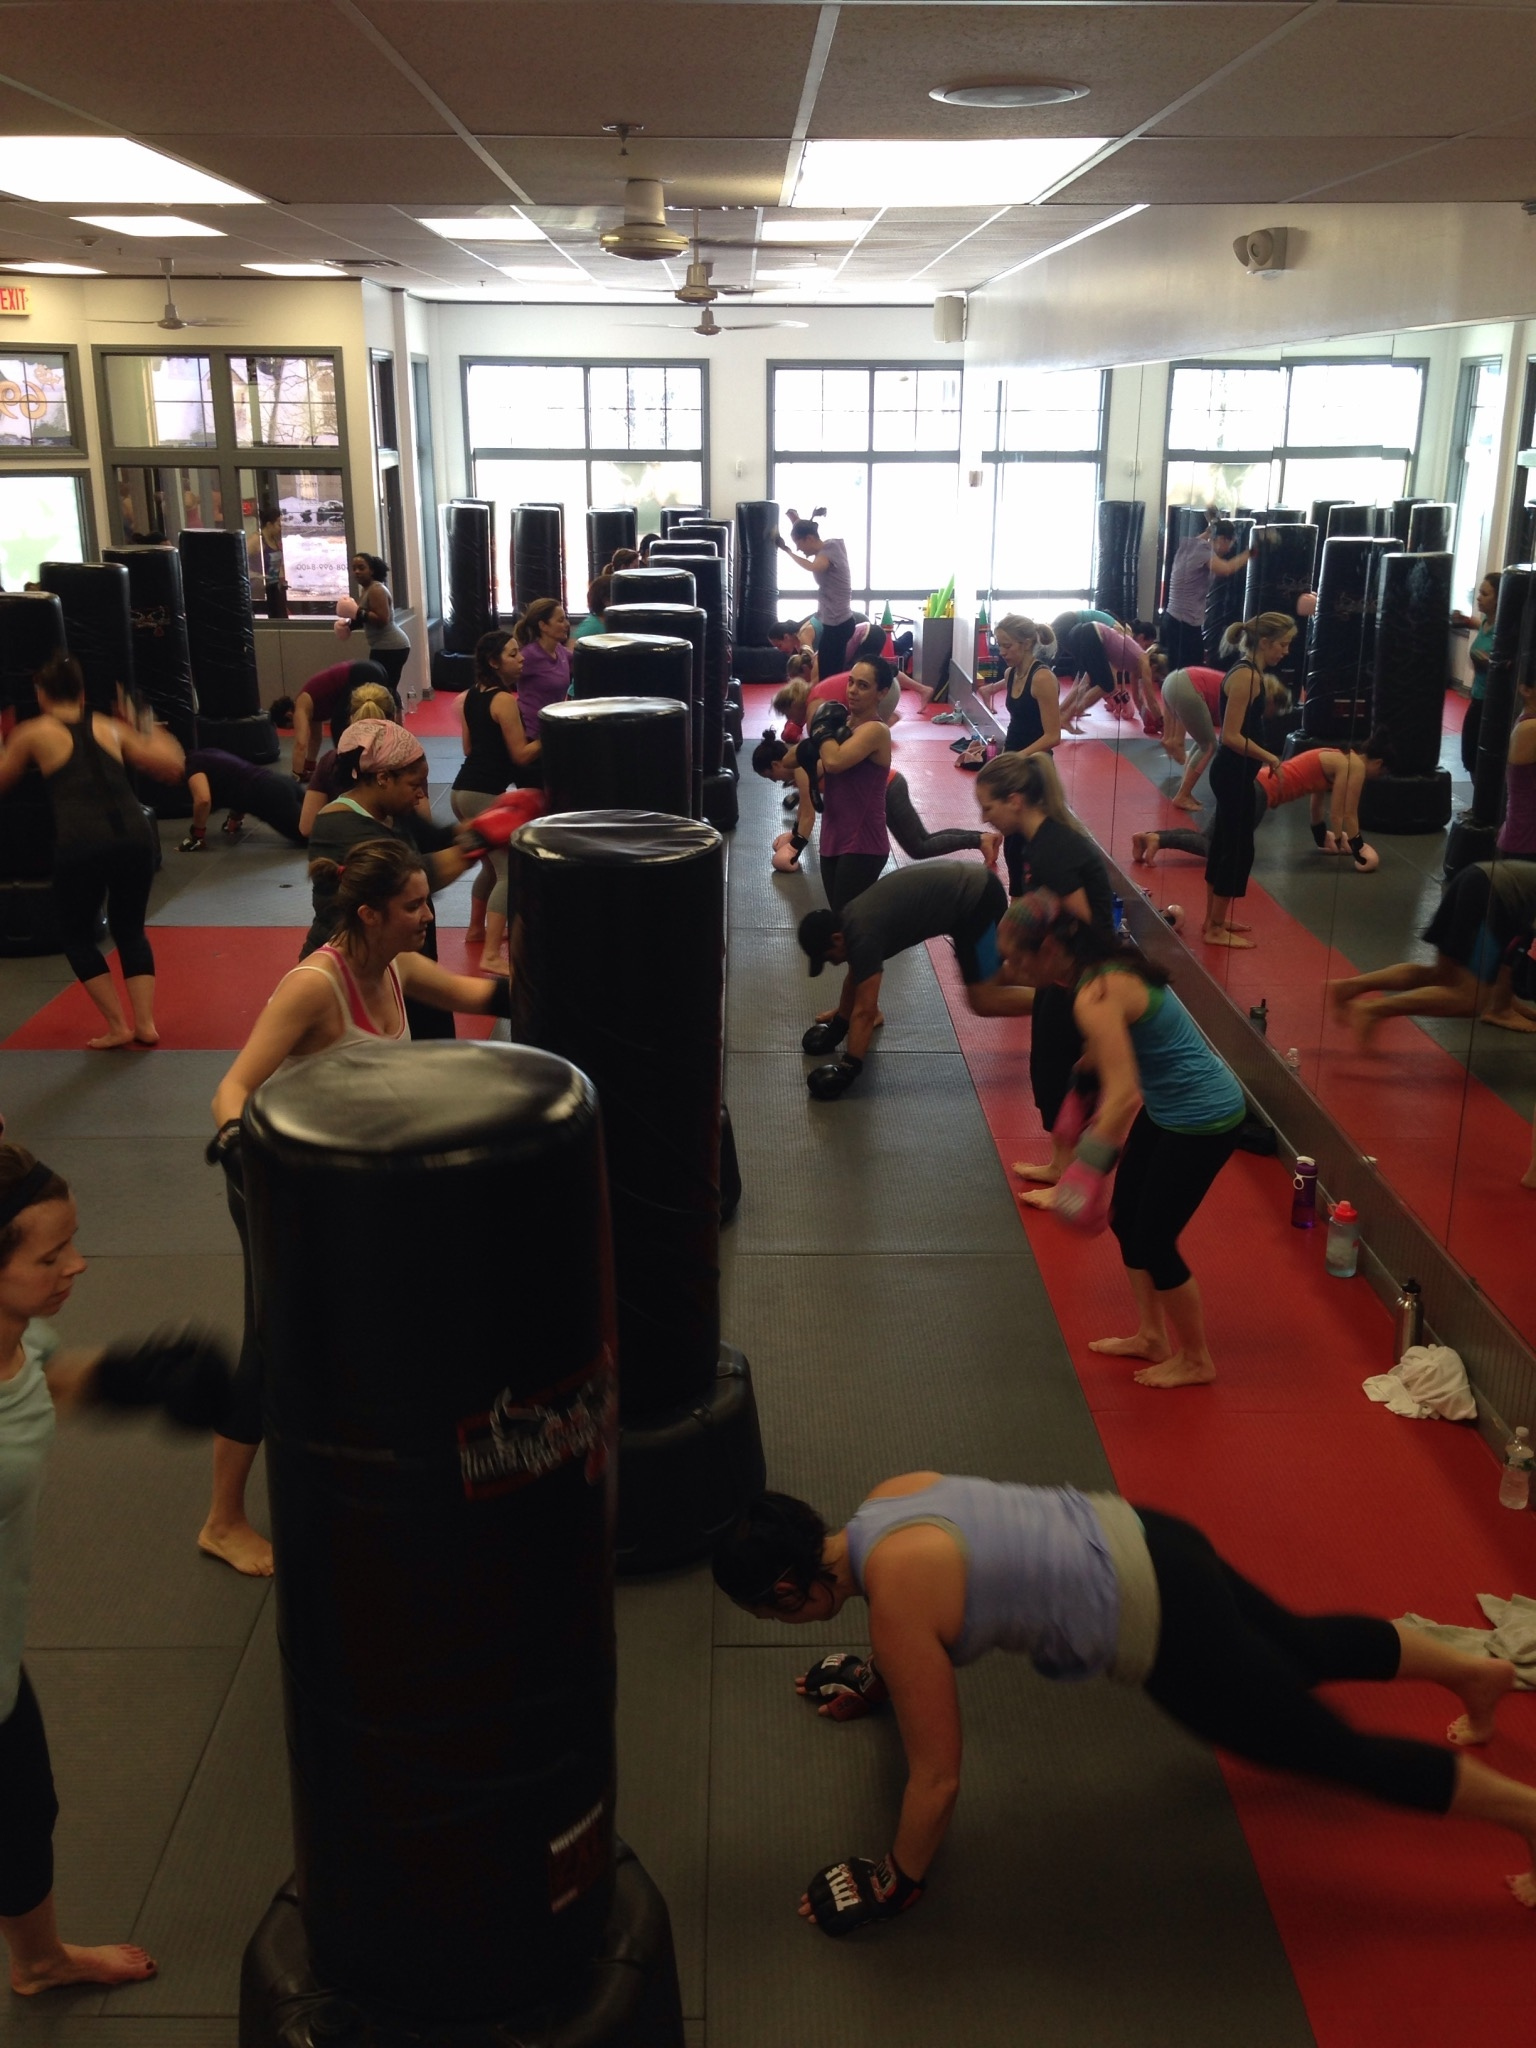 Torch'd kickboxing and Fitness Center